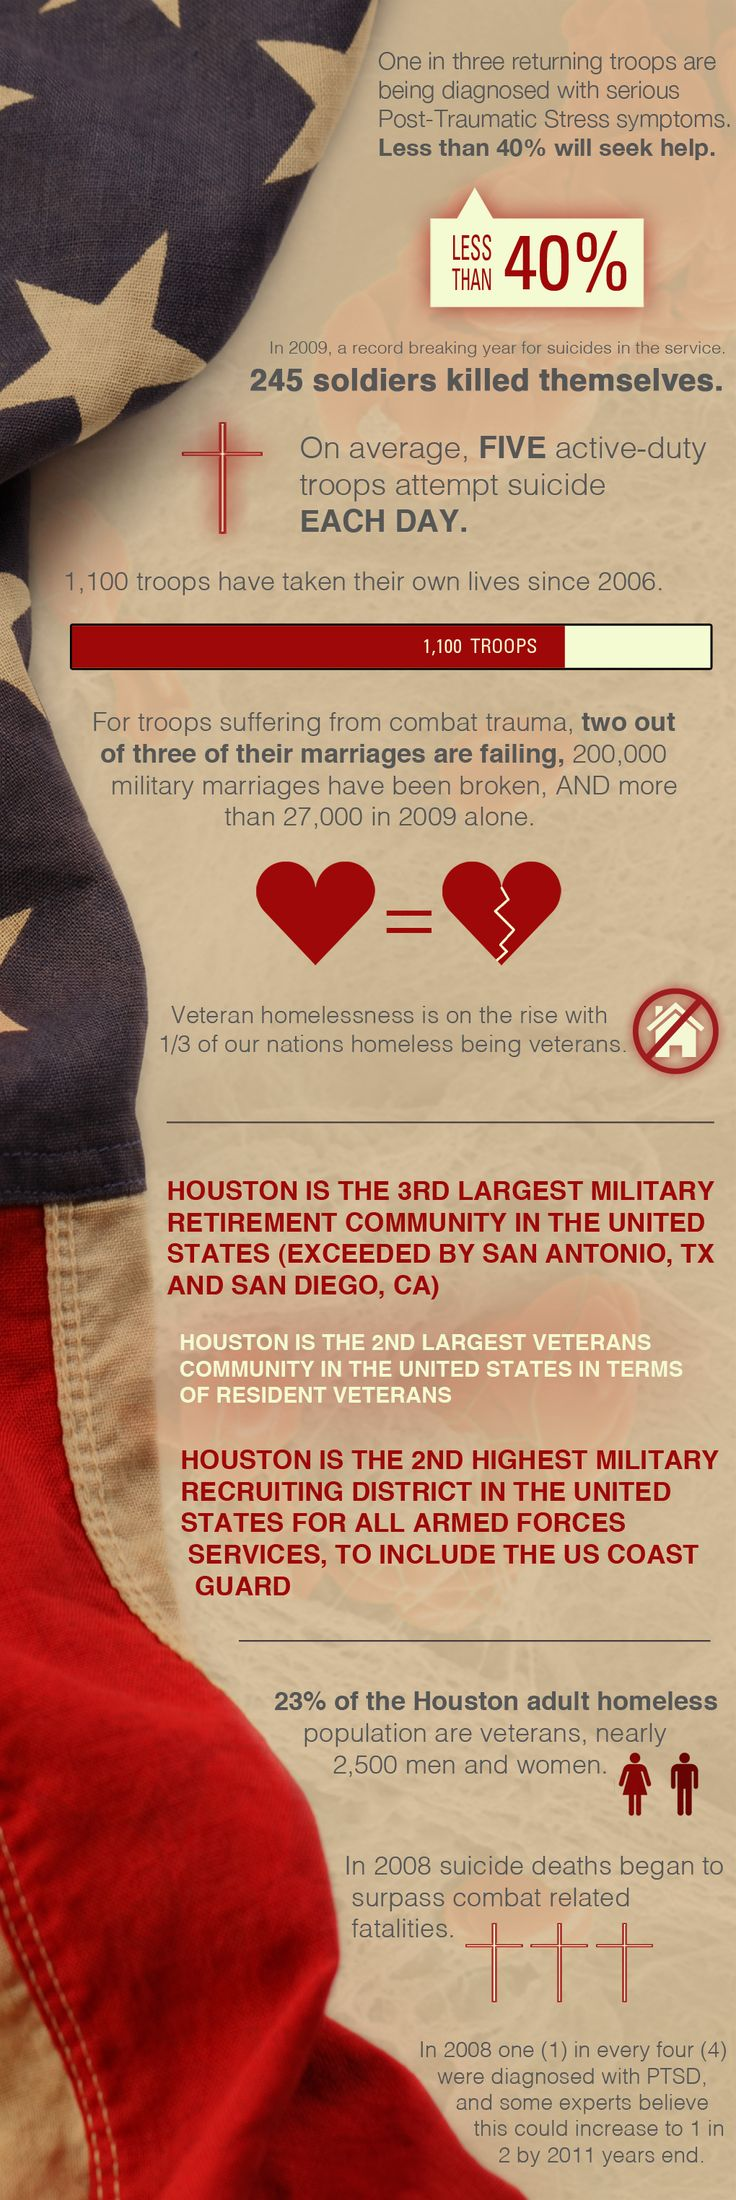 36 best PTSD images on Pinterest | Charts, Events and Health